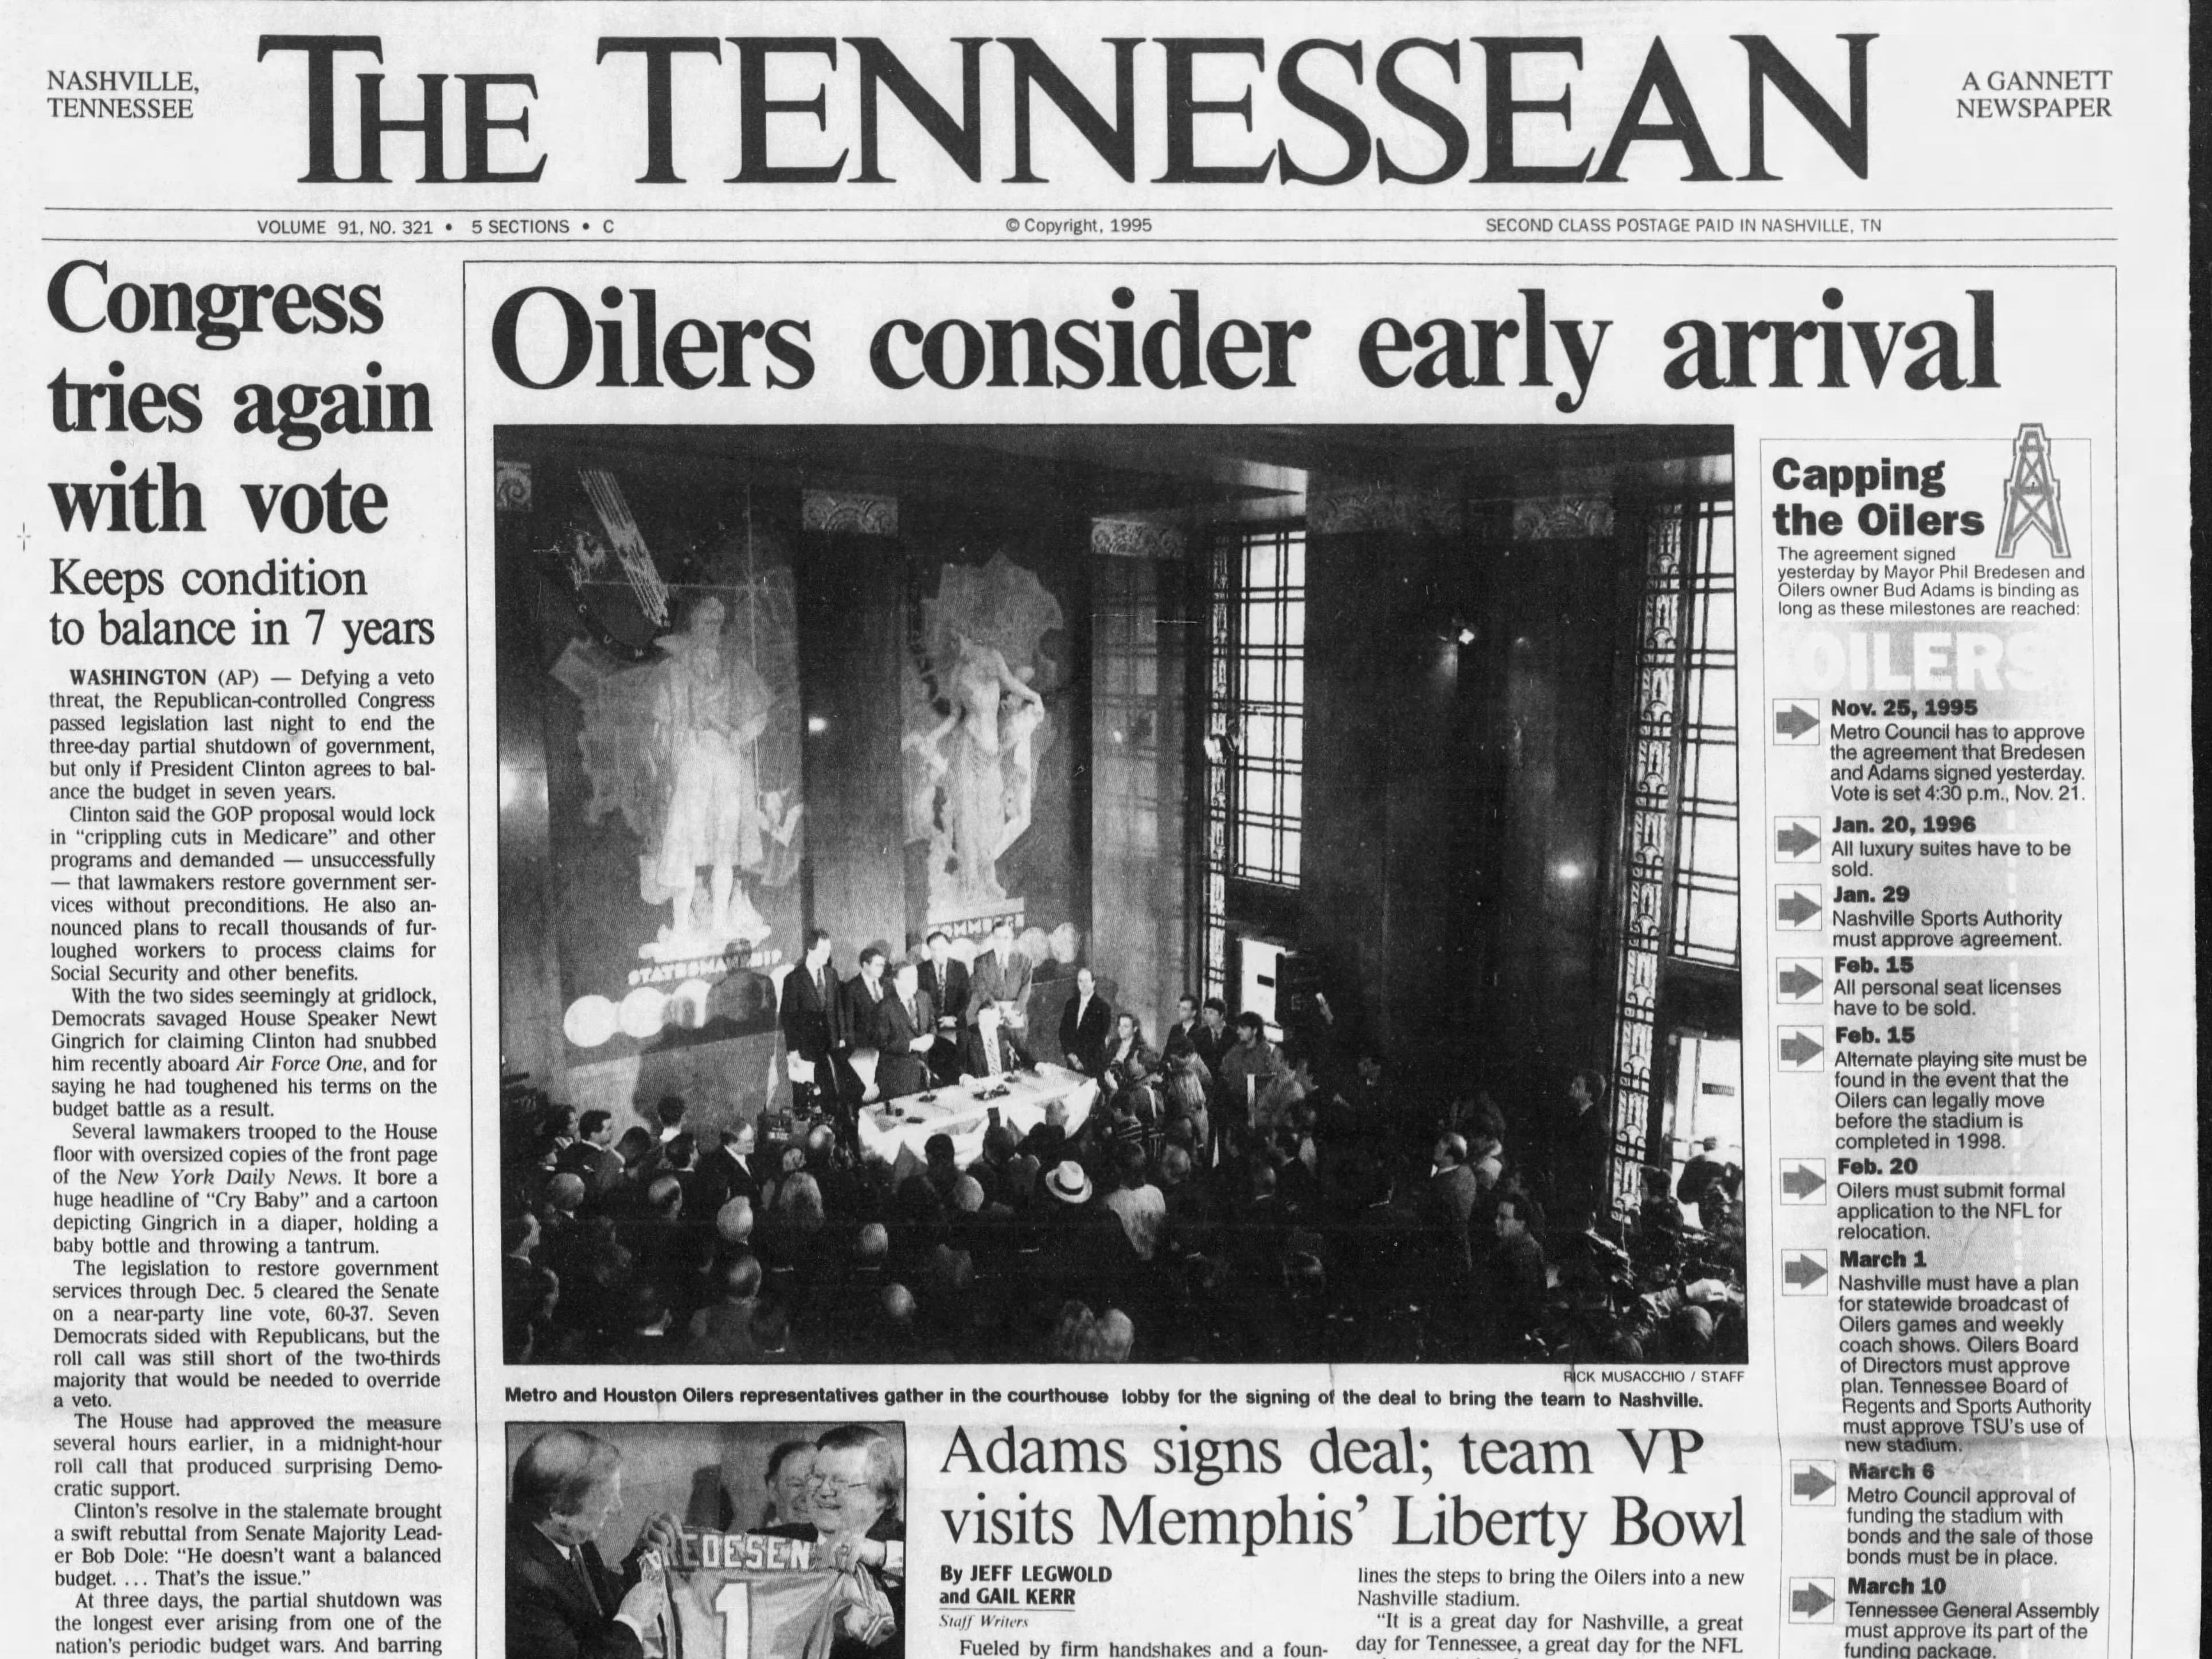 The front page of the Nov. 17, 1995 of The Tennessean for the coverage of the Houston Oilers coming to Nashville.